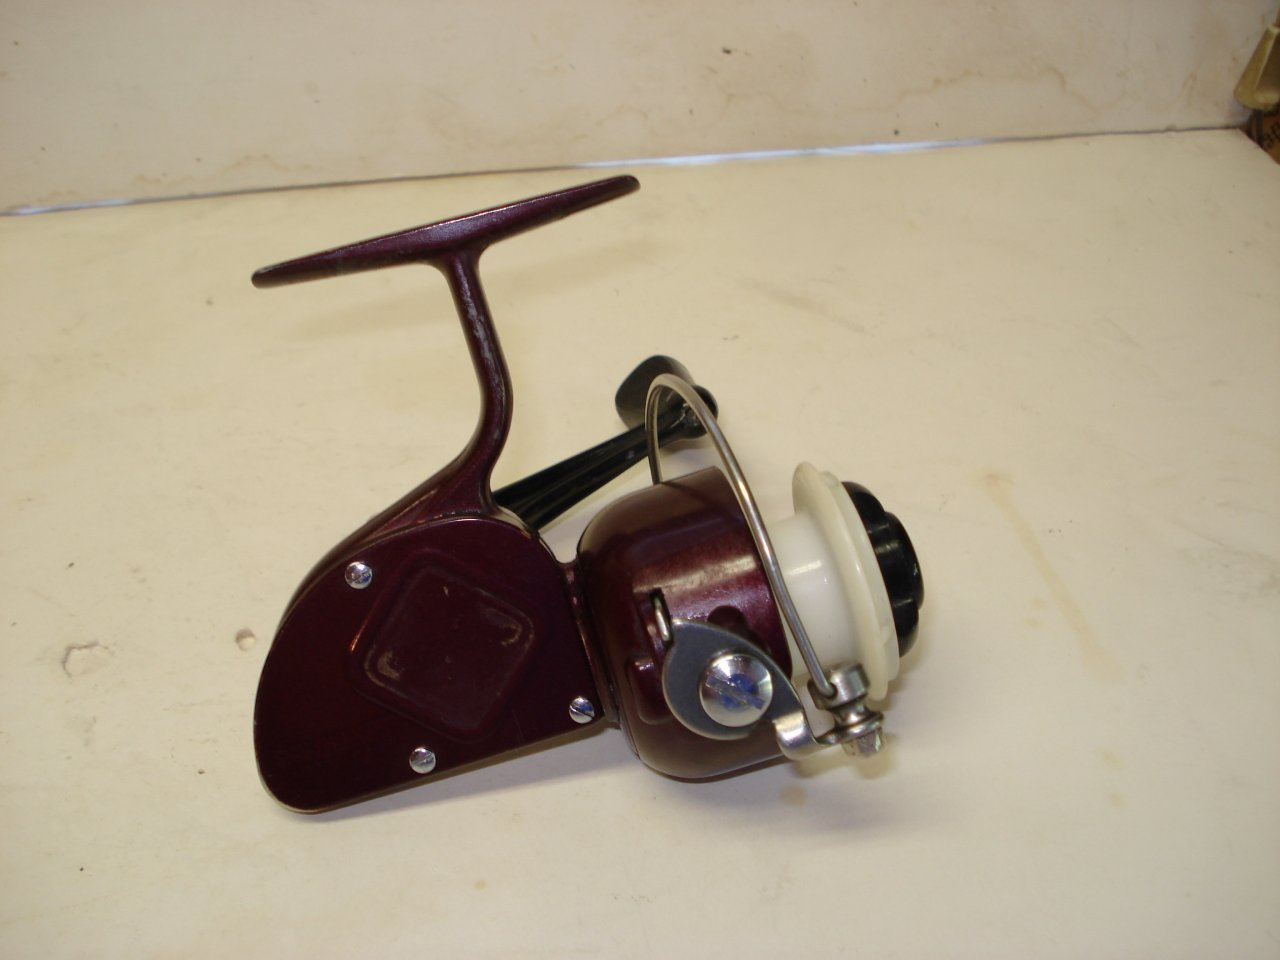 Dating mitchell fishing reels shhh Dating-Tickets